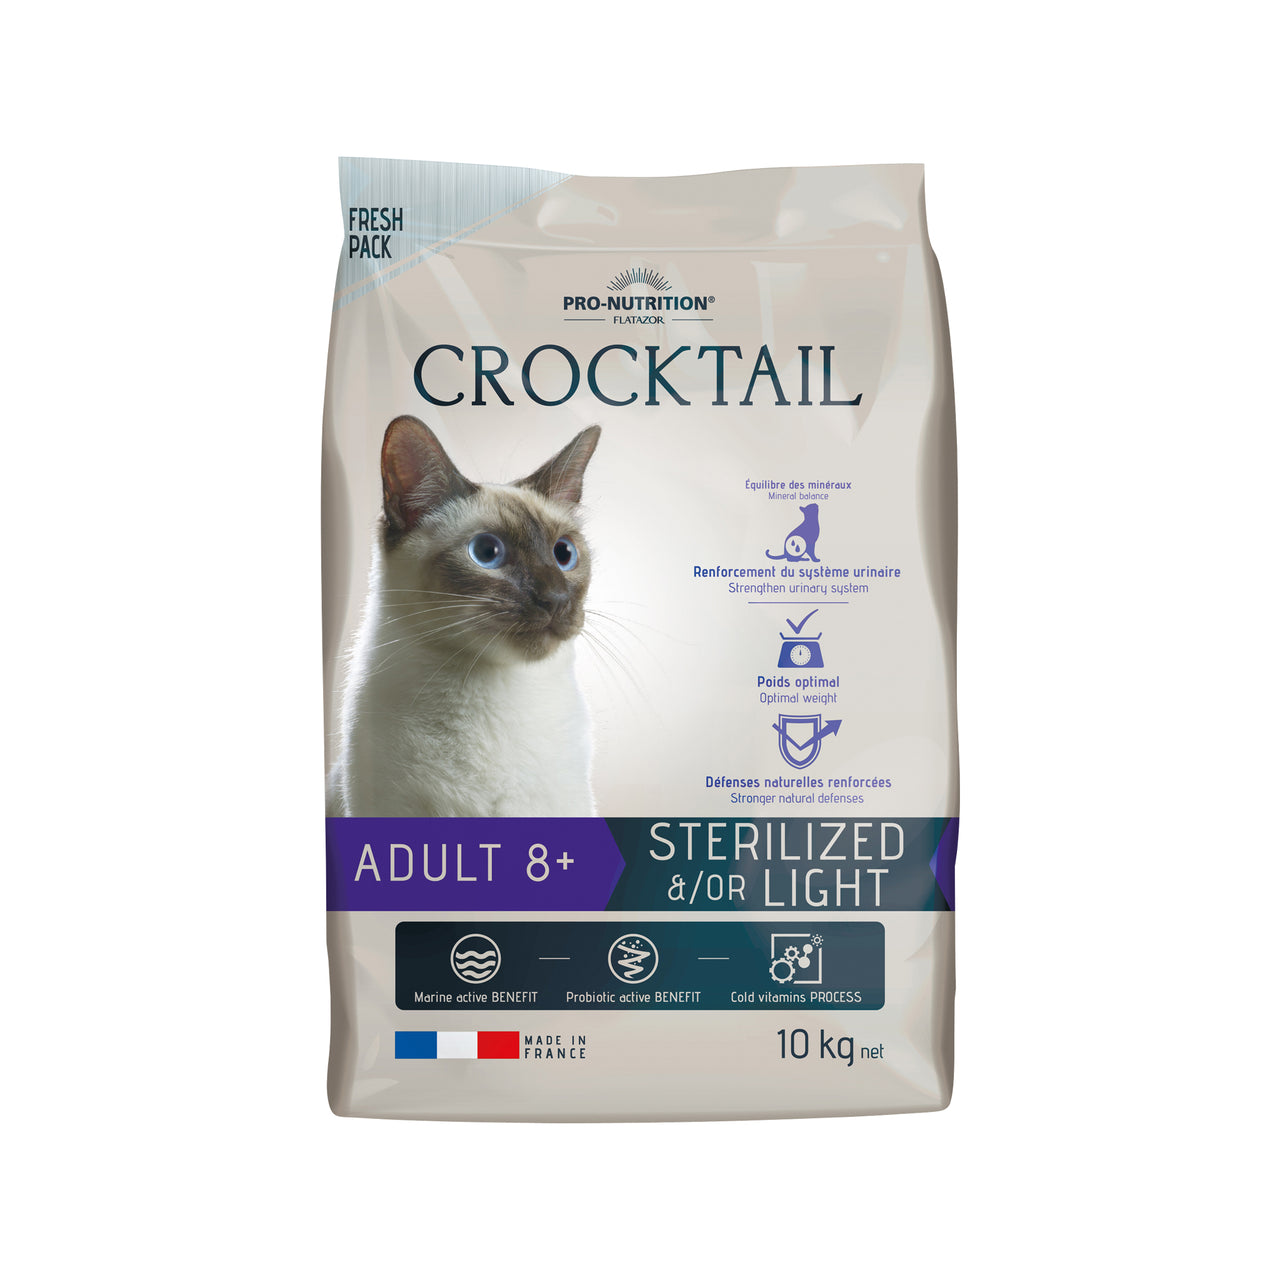 Crocktail Adult 8+ Sterilized / Light 10 kg